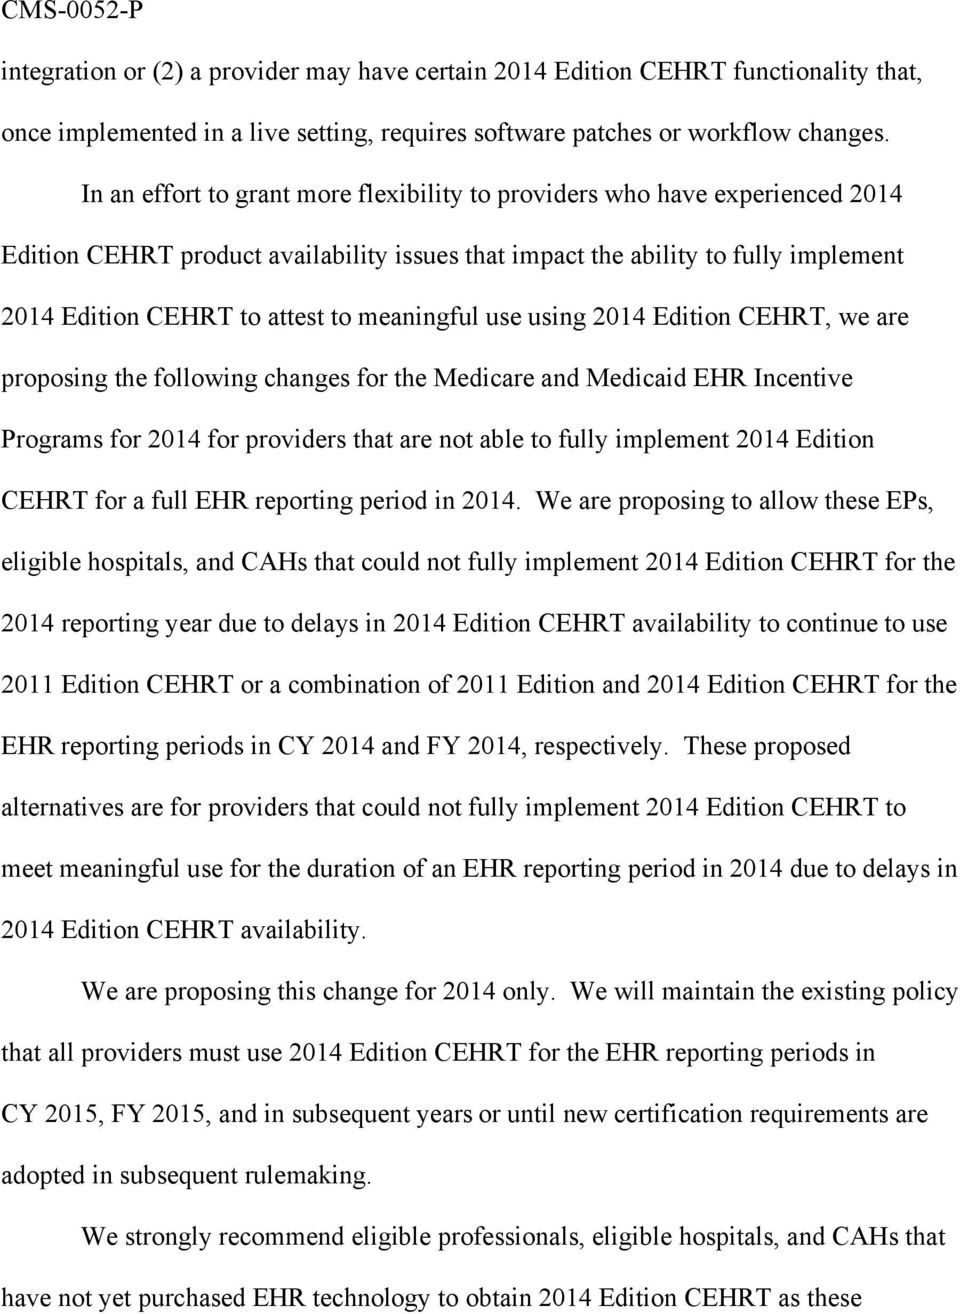 meaningful use using 2014 Edition CEHRT, we are proposing the following changes for the Medicare and Medicaid EHR Incentive Programs for 2014 for providers that are not able to fully implement 2014